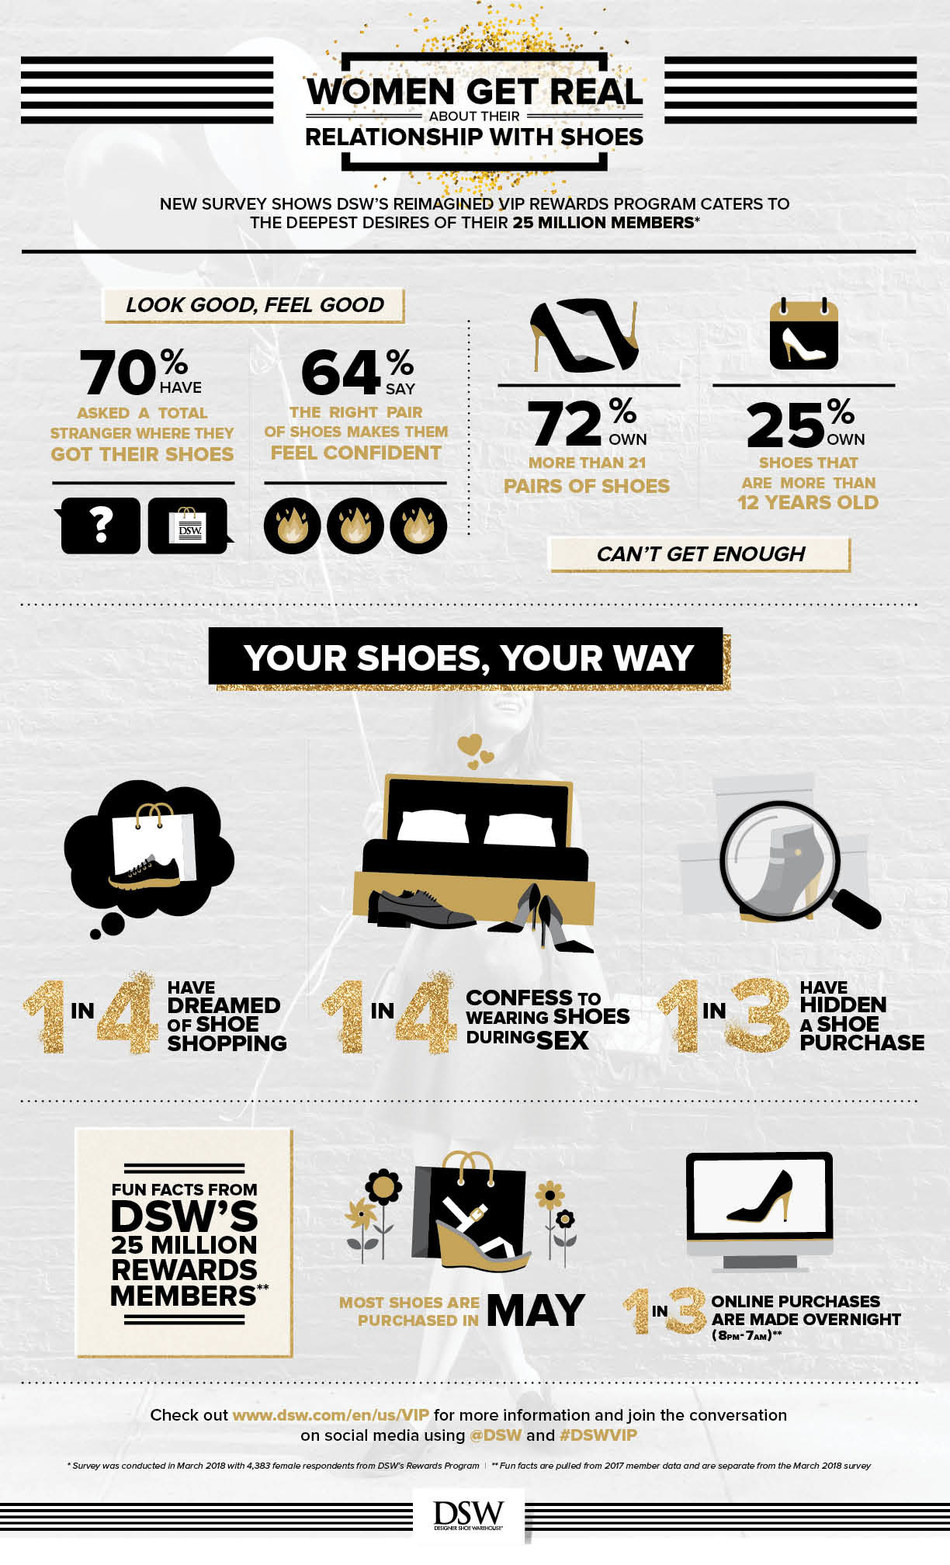 Survey results from DSW Rewards members